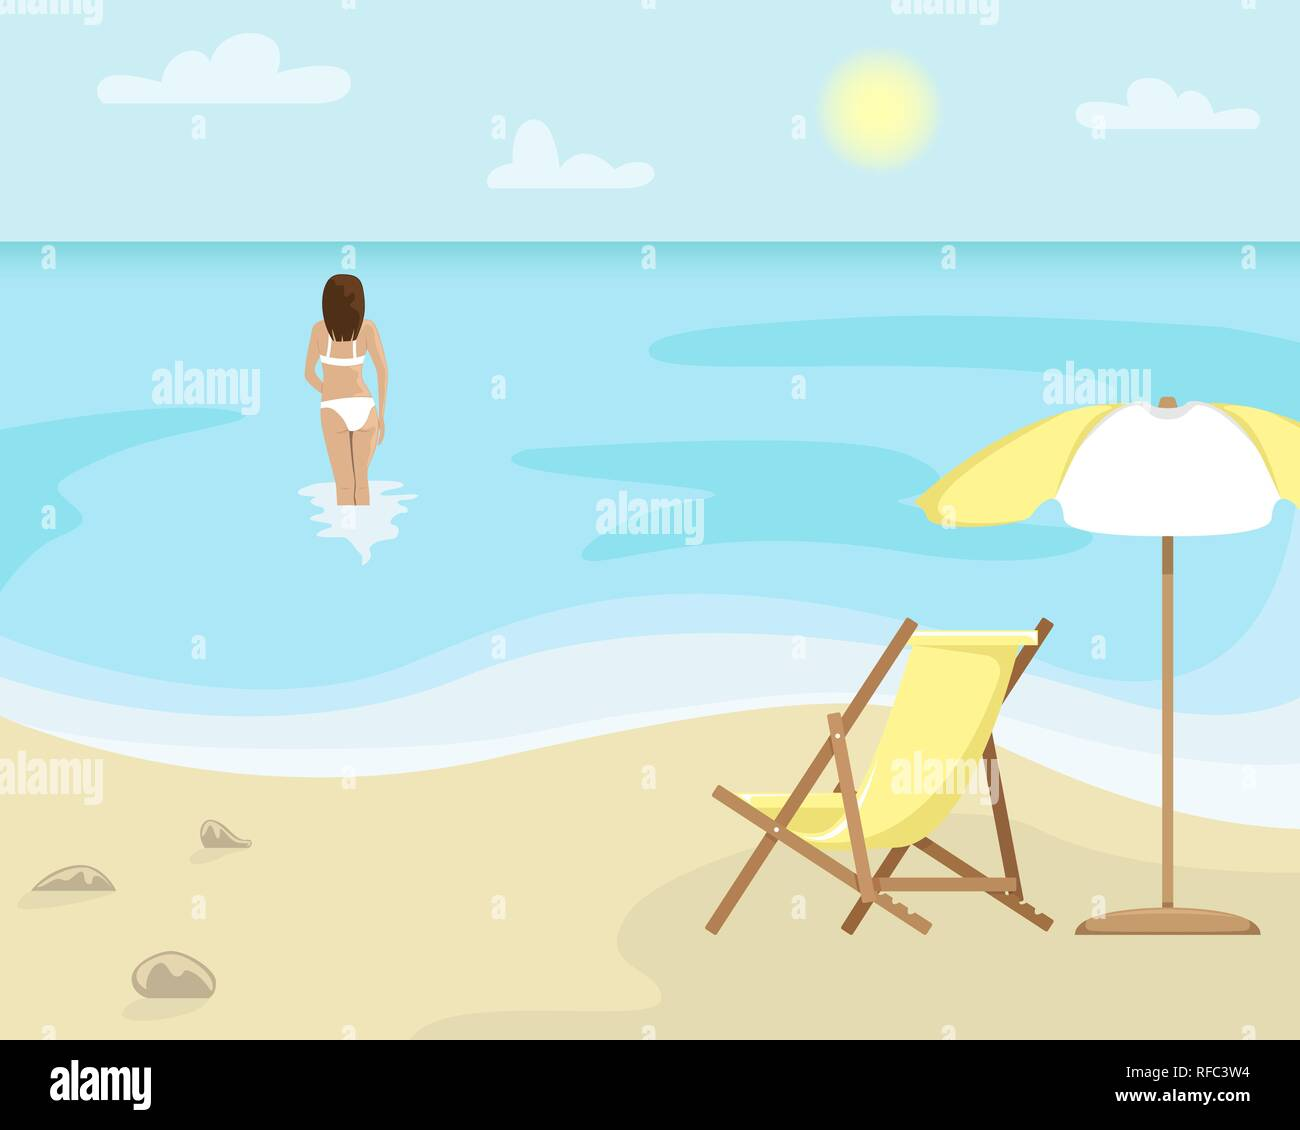 Beach landscape with sun lounger and sun umbrella. Girl in a swimsuit is in the sea. Flat vector illustration. - Stock Image